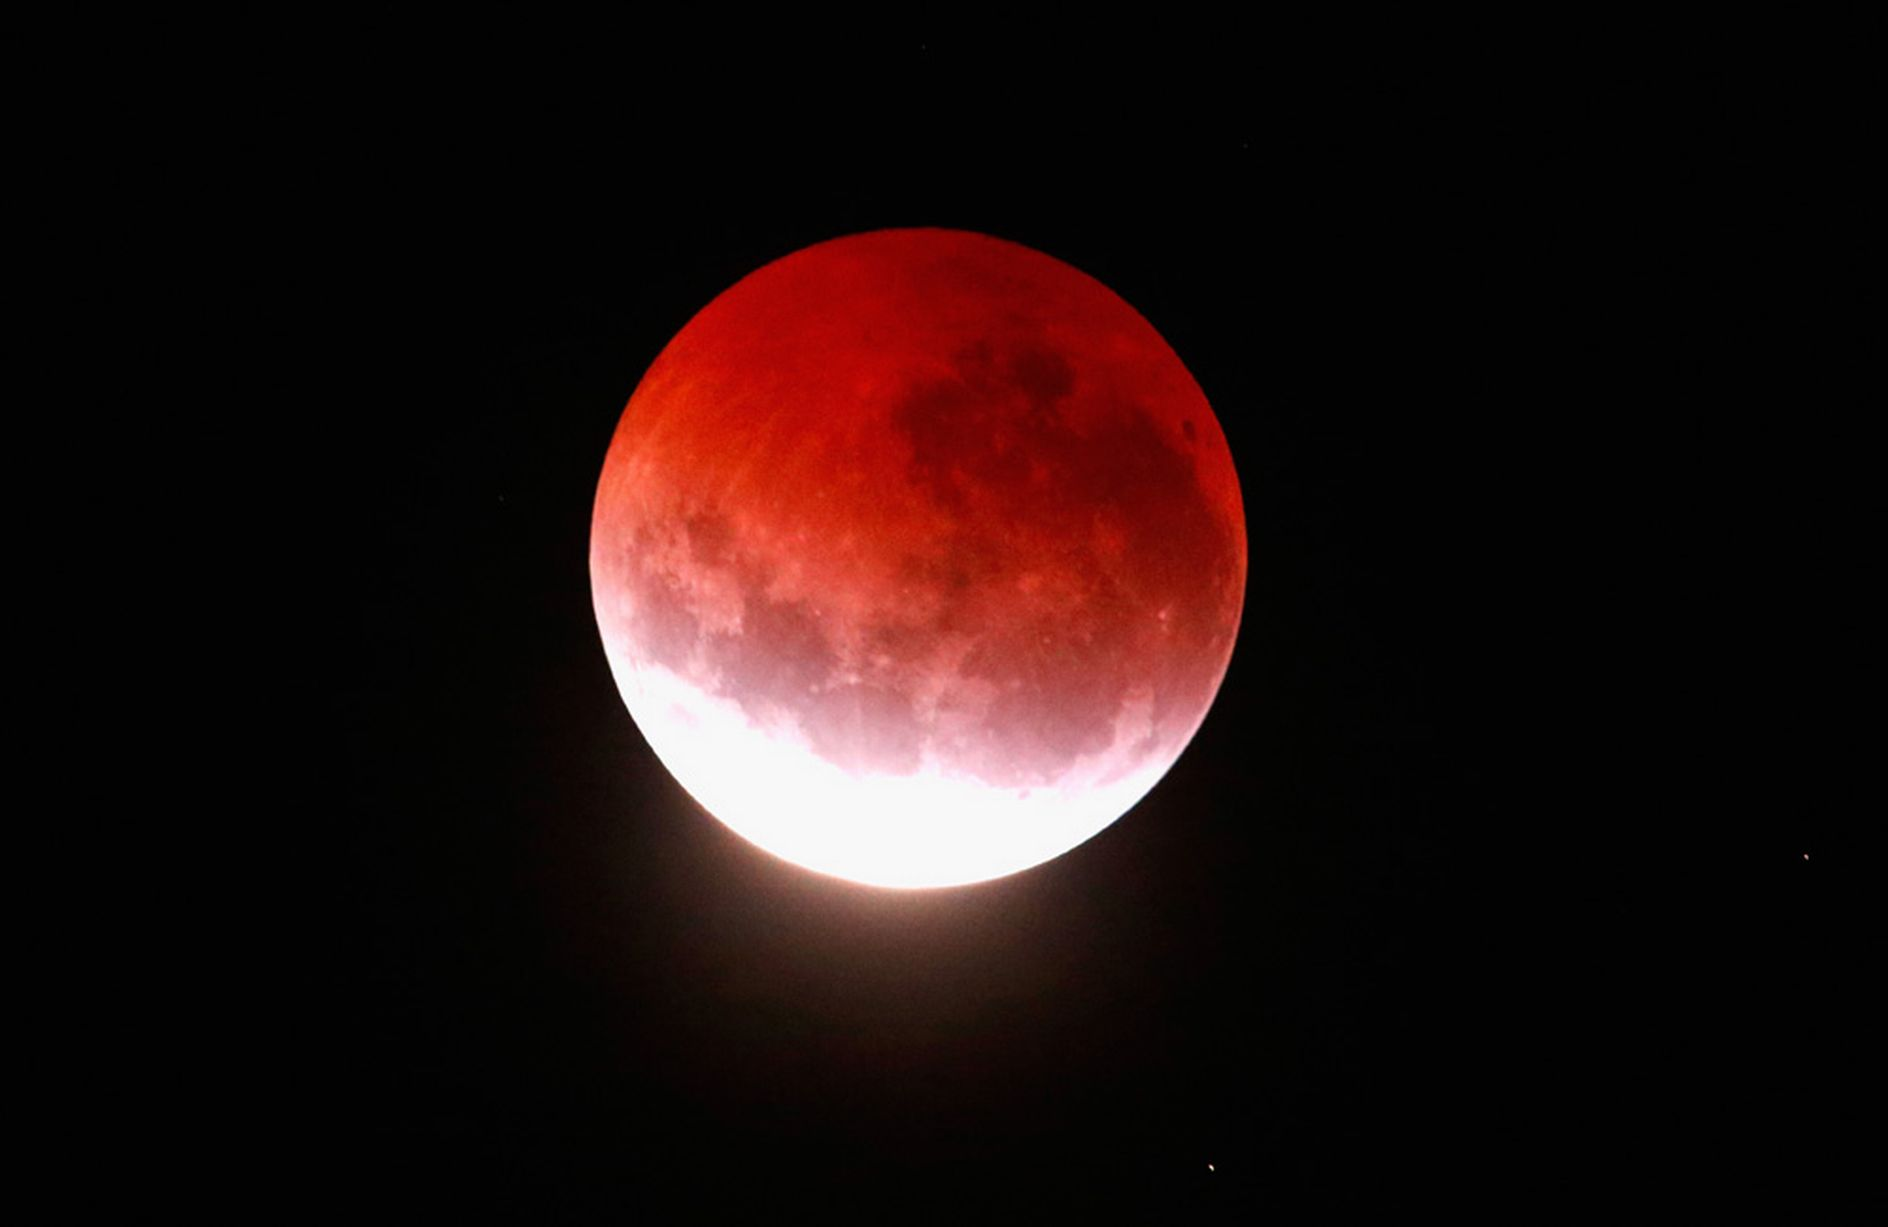 blood moon day today - photo #20